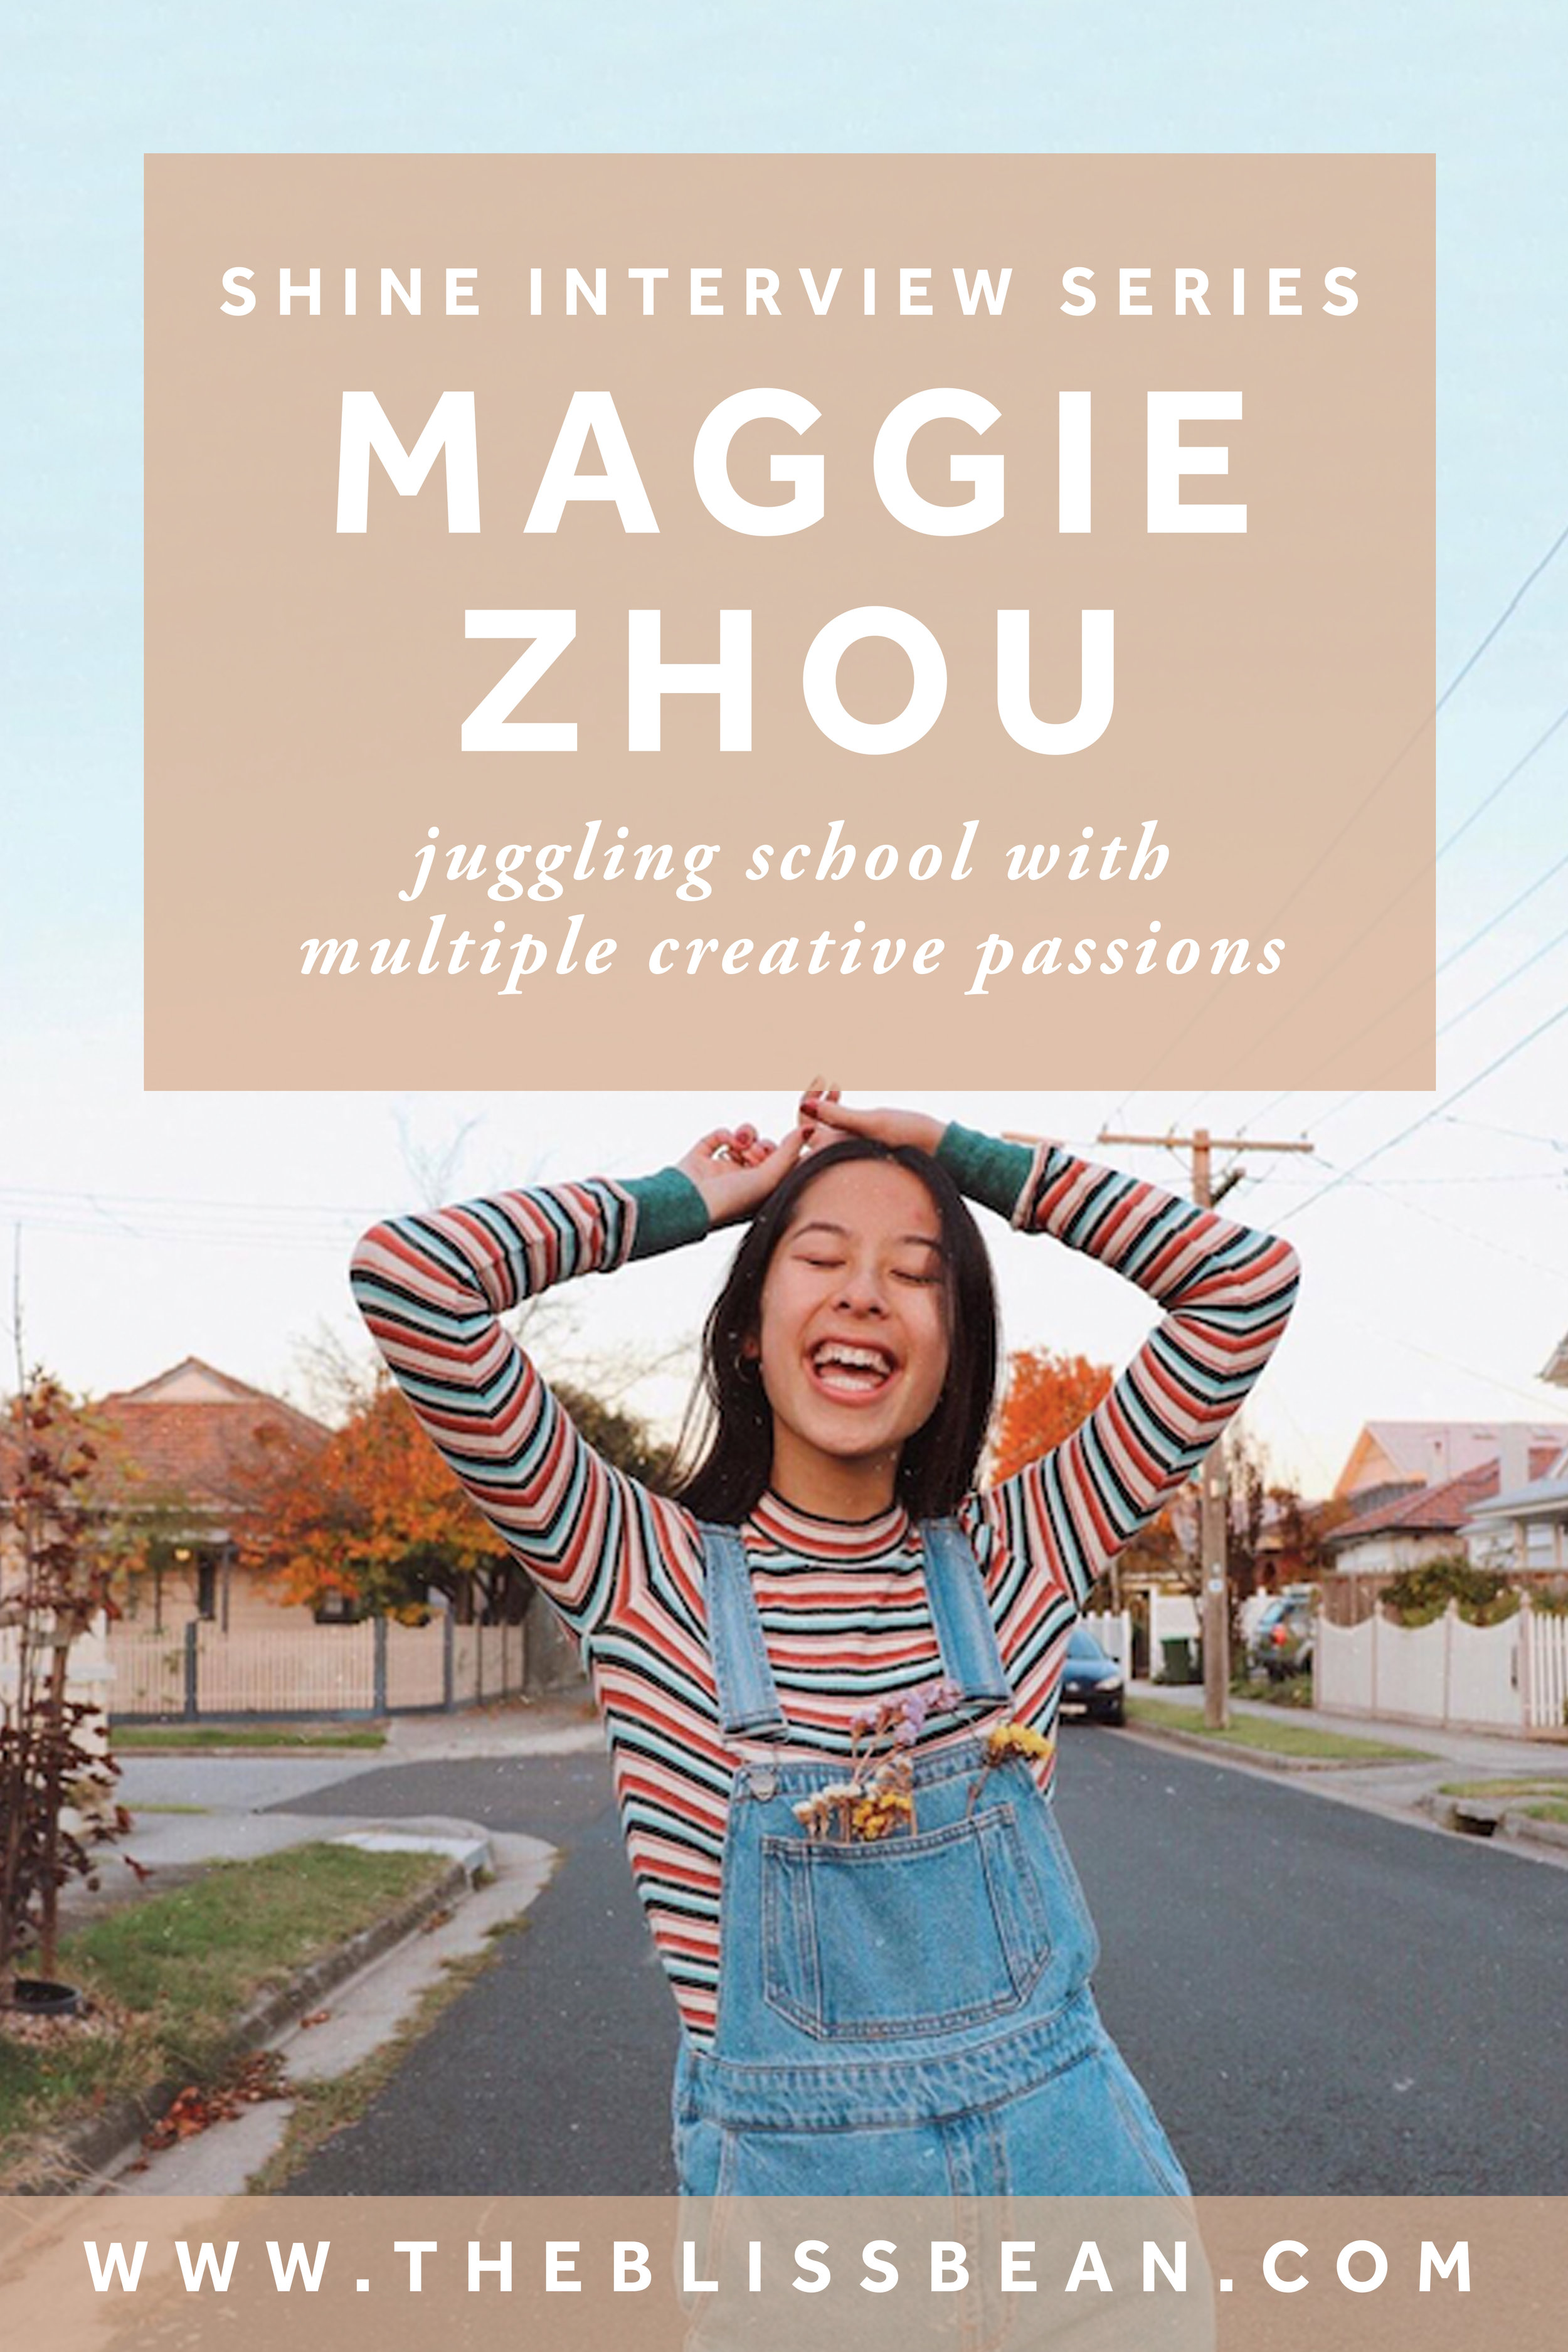 Maggie - Cover Image.jpg